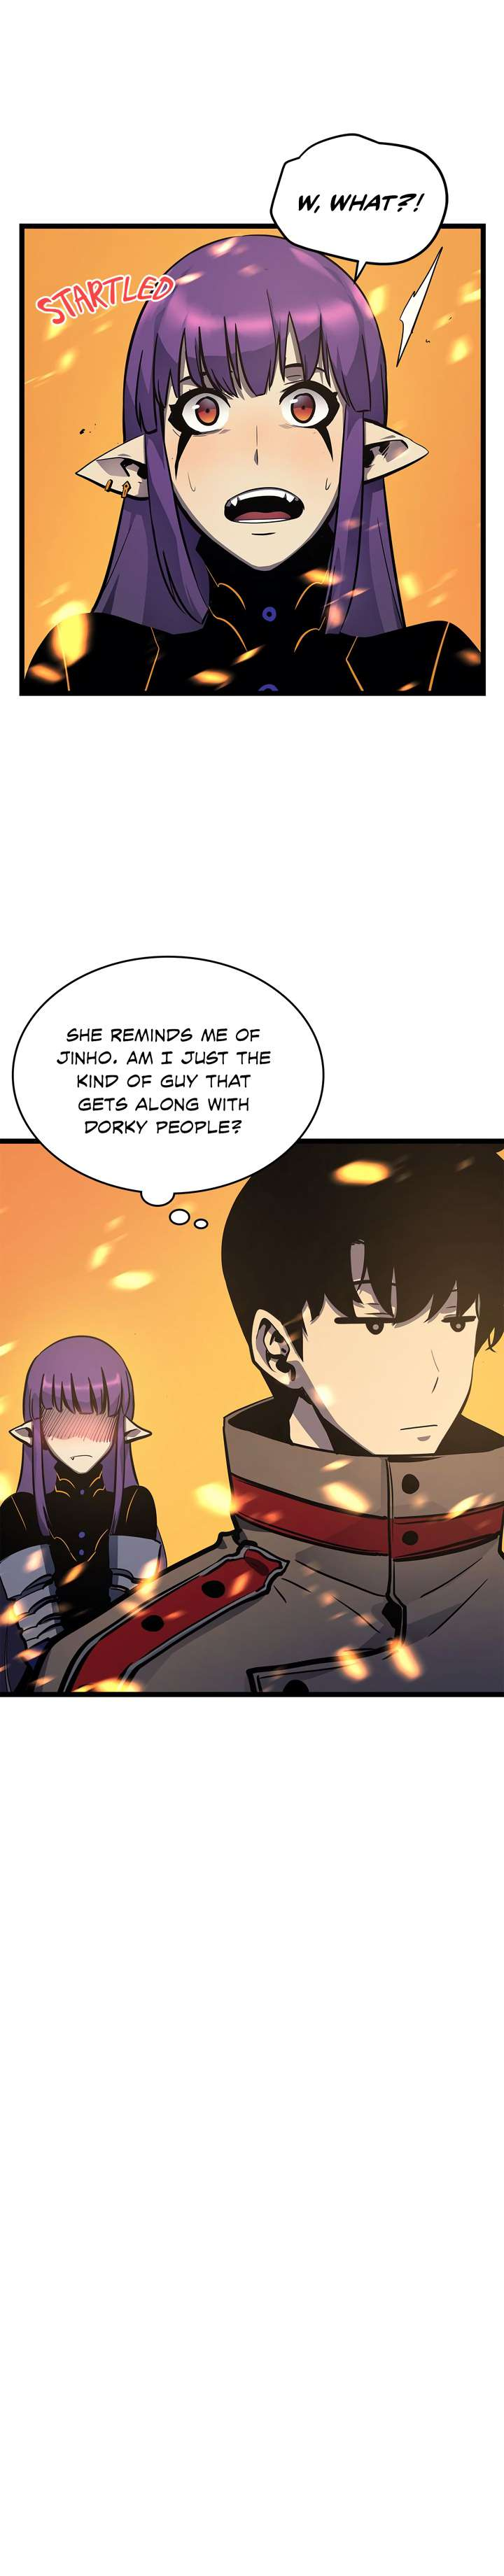 Solo Leveling Chapter 84 Page 30